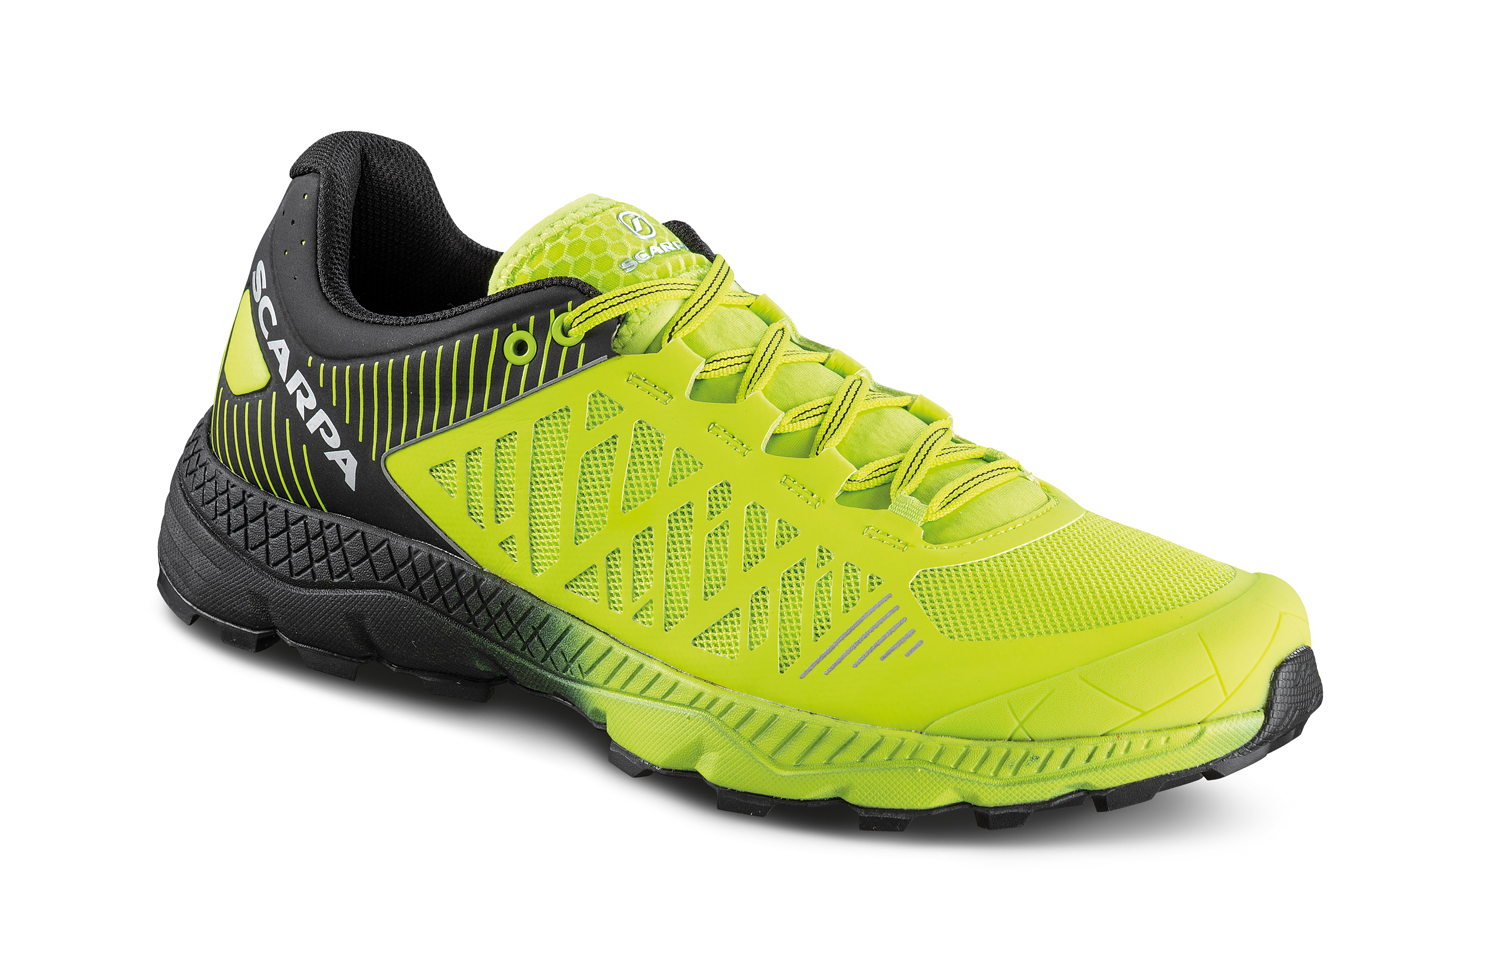 best service 3dbdc a7ee4 Scarpa Spin Ultra Trail Running Shoes Summer 2019 for € 78.99